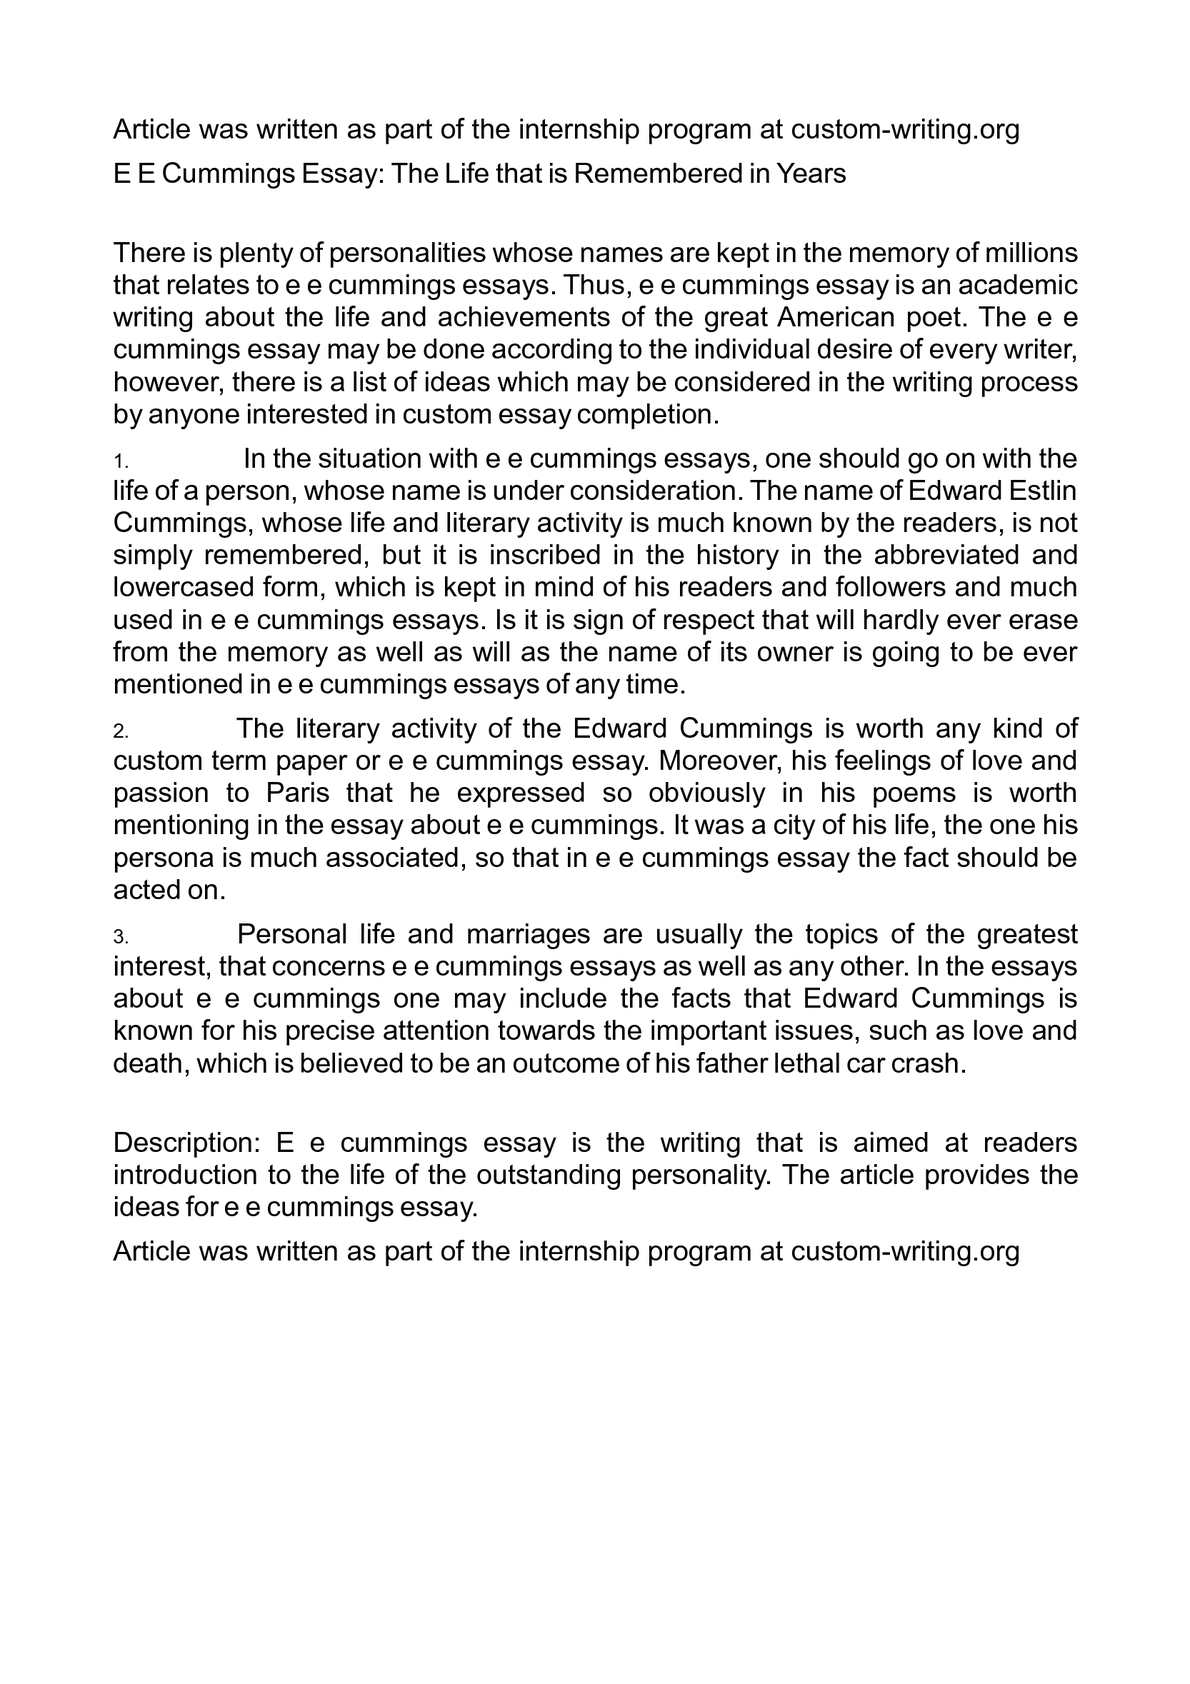 Essay Thesis Statement Examples  Essay Writing High School also Essay Papers Online Calamo  E E Cummings Essay The Life That Is Remembered In Years Essay About Learning English